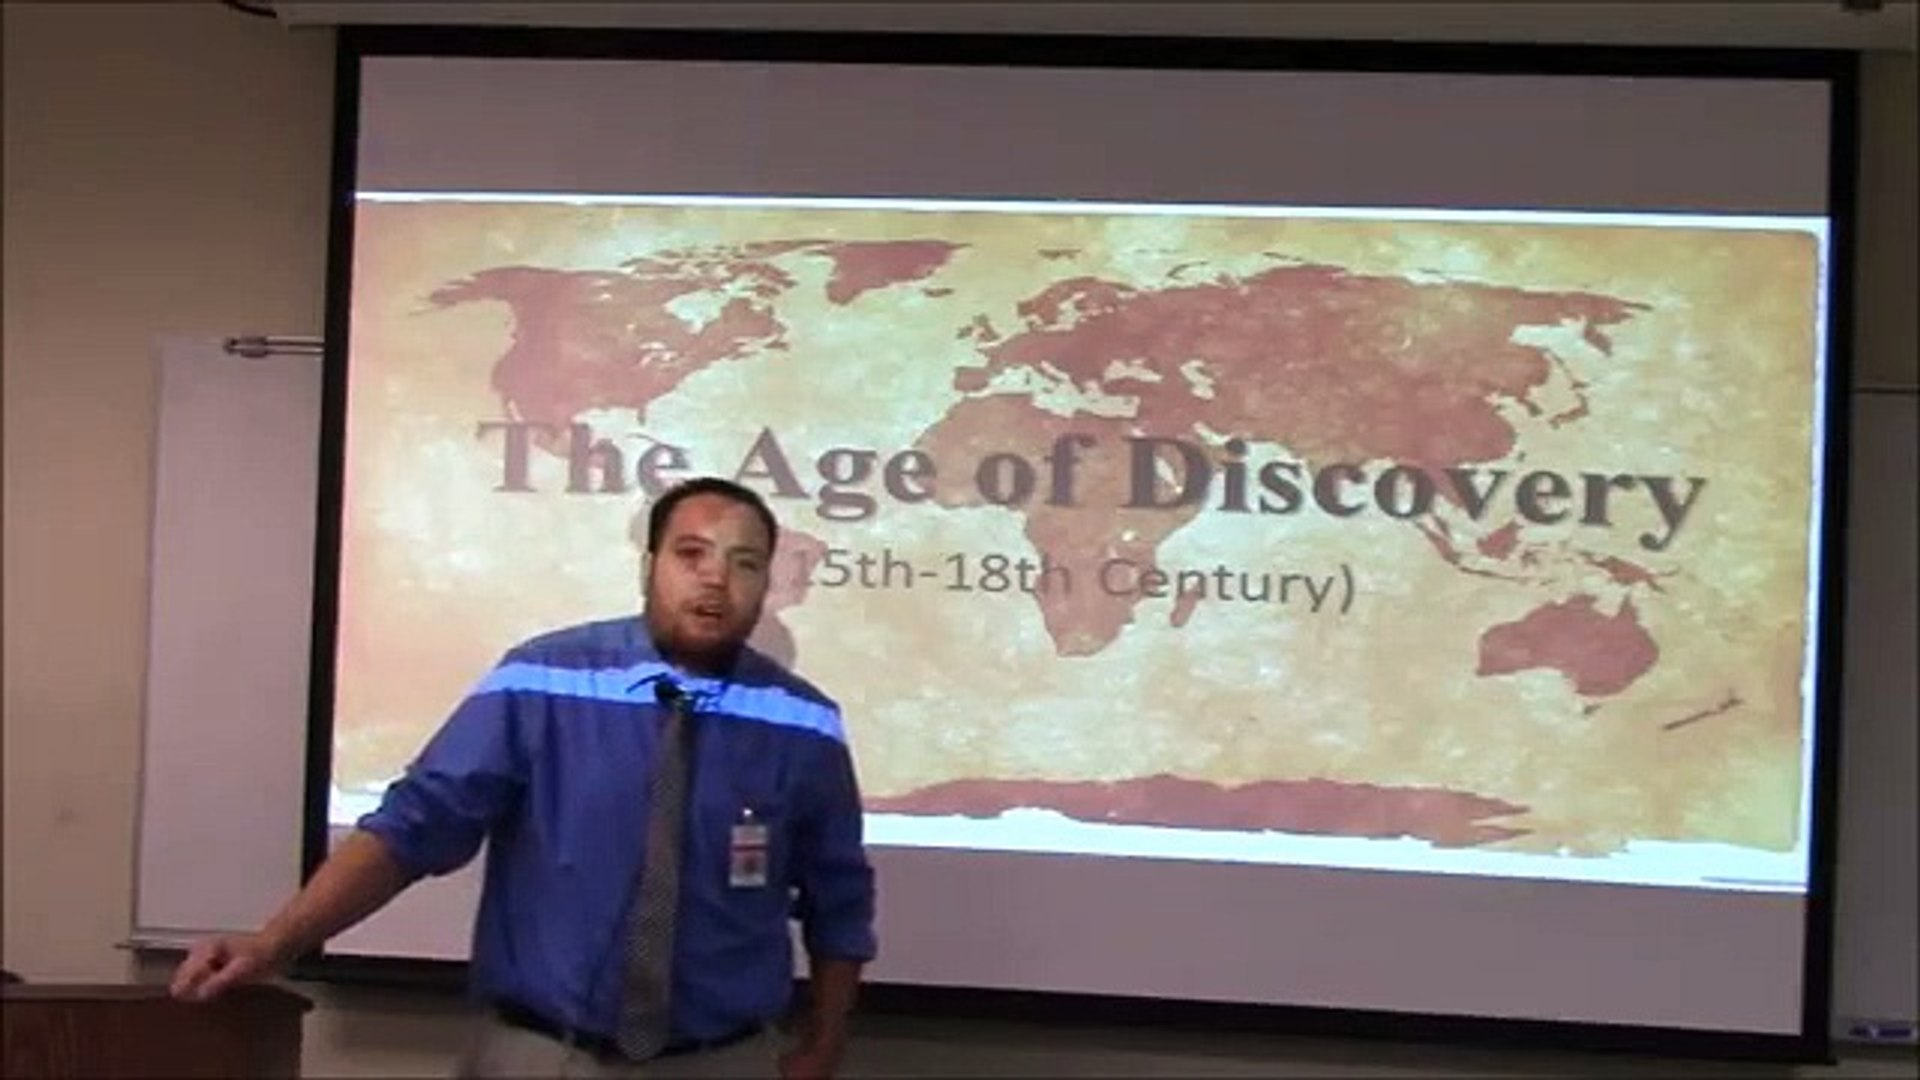 Age of Discovery -  Introduction to the European colonization of the Americas (History documentary)